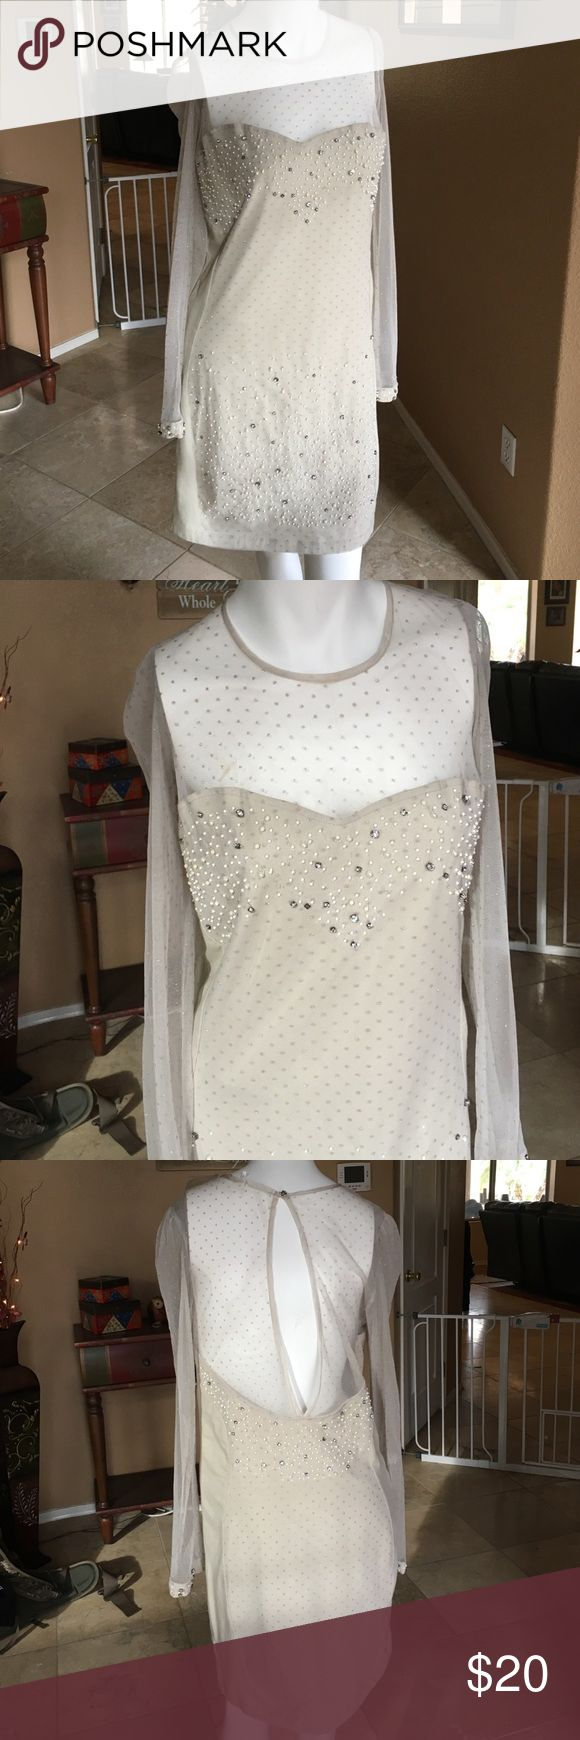 Formal Dress! 2. Formal Off White Colored Dress! Complete with rhinestone and white beading, sheer sleeves, and a keyhole back! Extra stones included! Kimchi Blue Dresses Long Sleeve